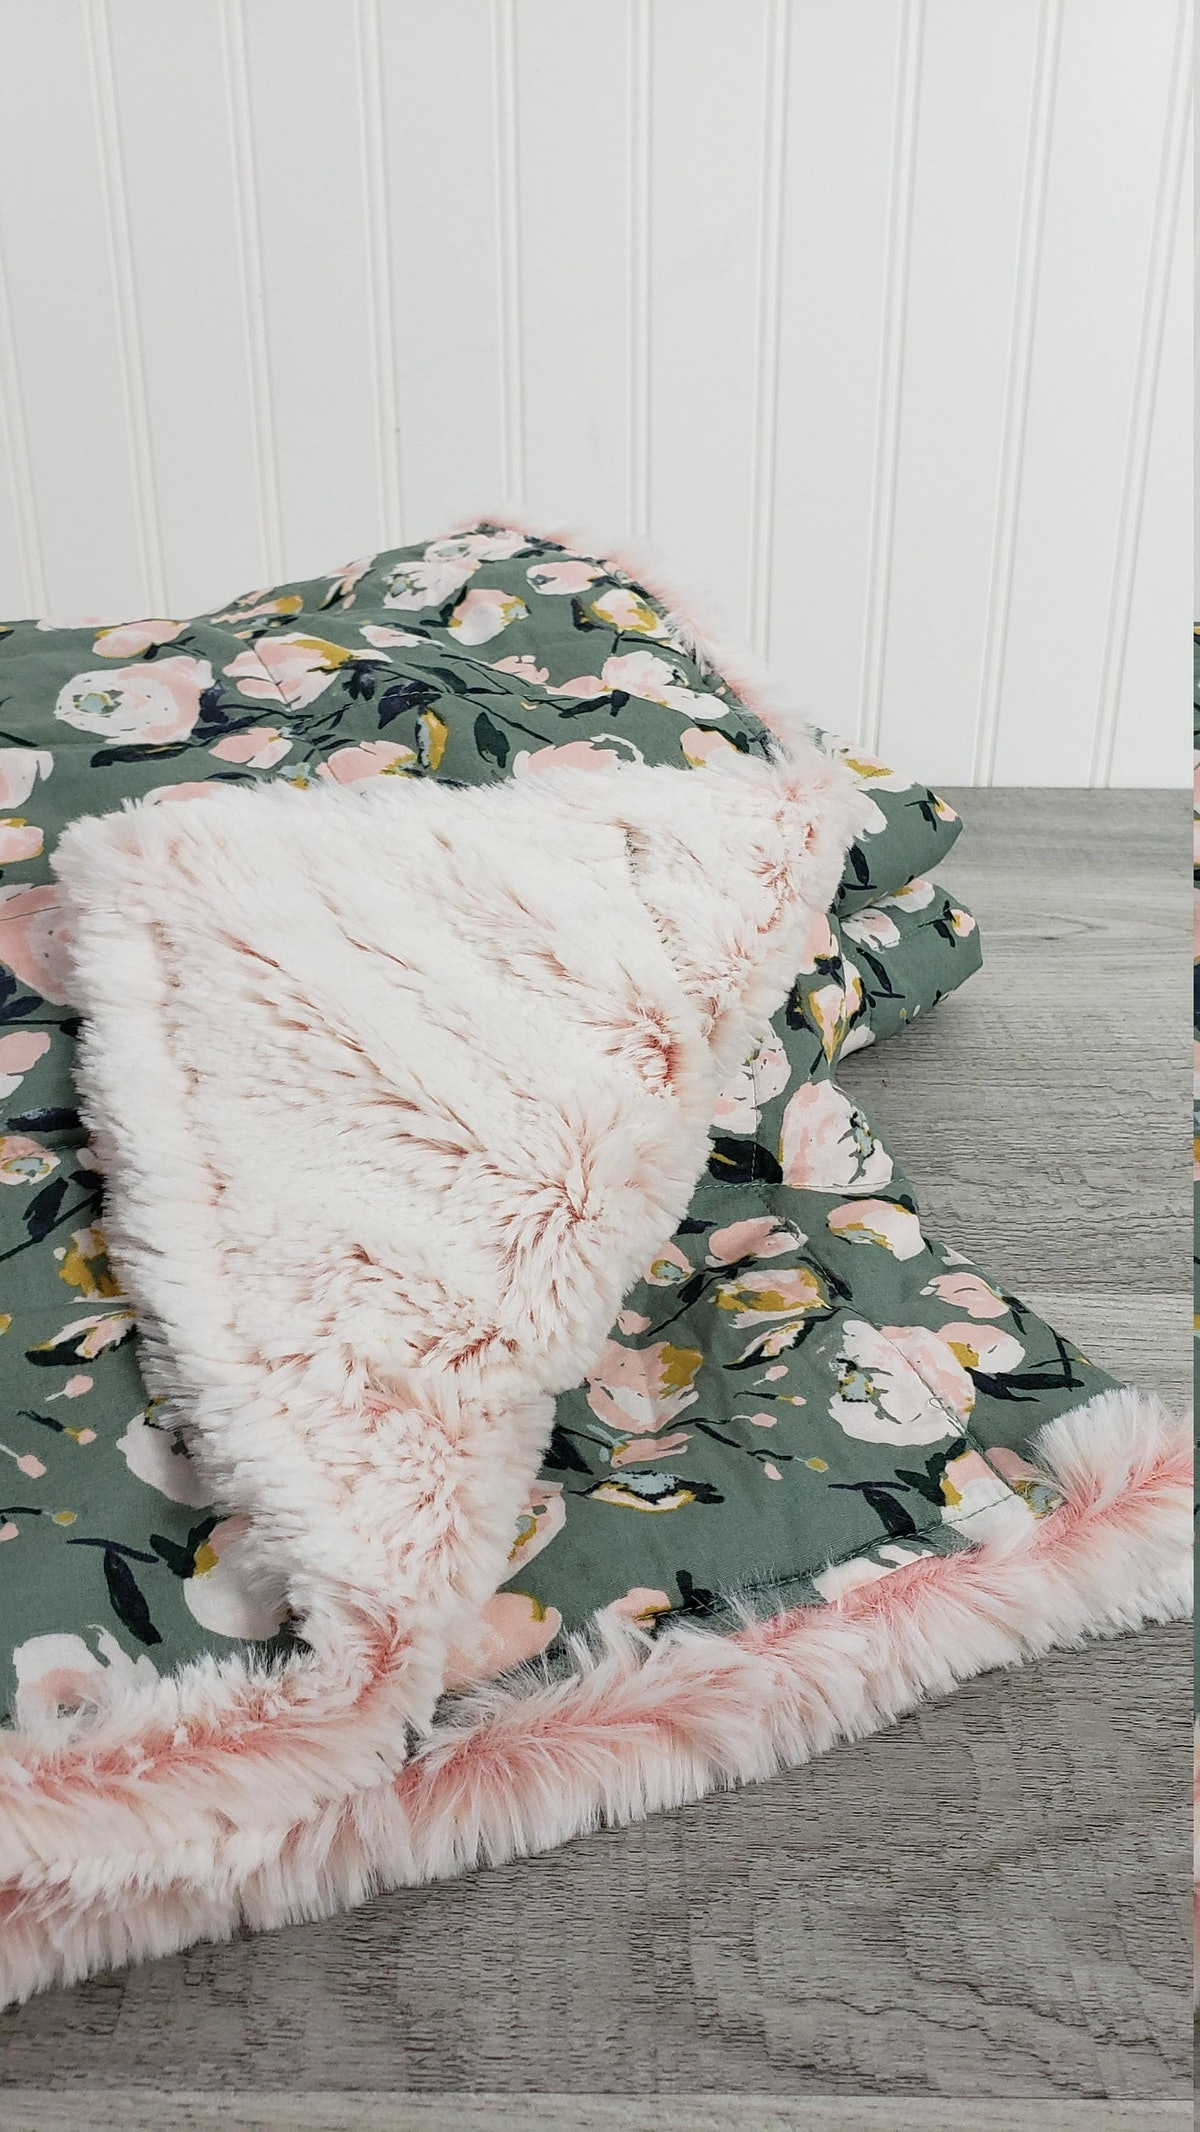 Weighted Blanket Adult, Graduation Gift for Daughter , Mom Gift, Sister Gift, Weighted Lap Pad